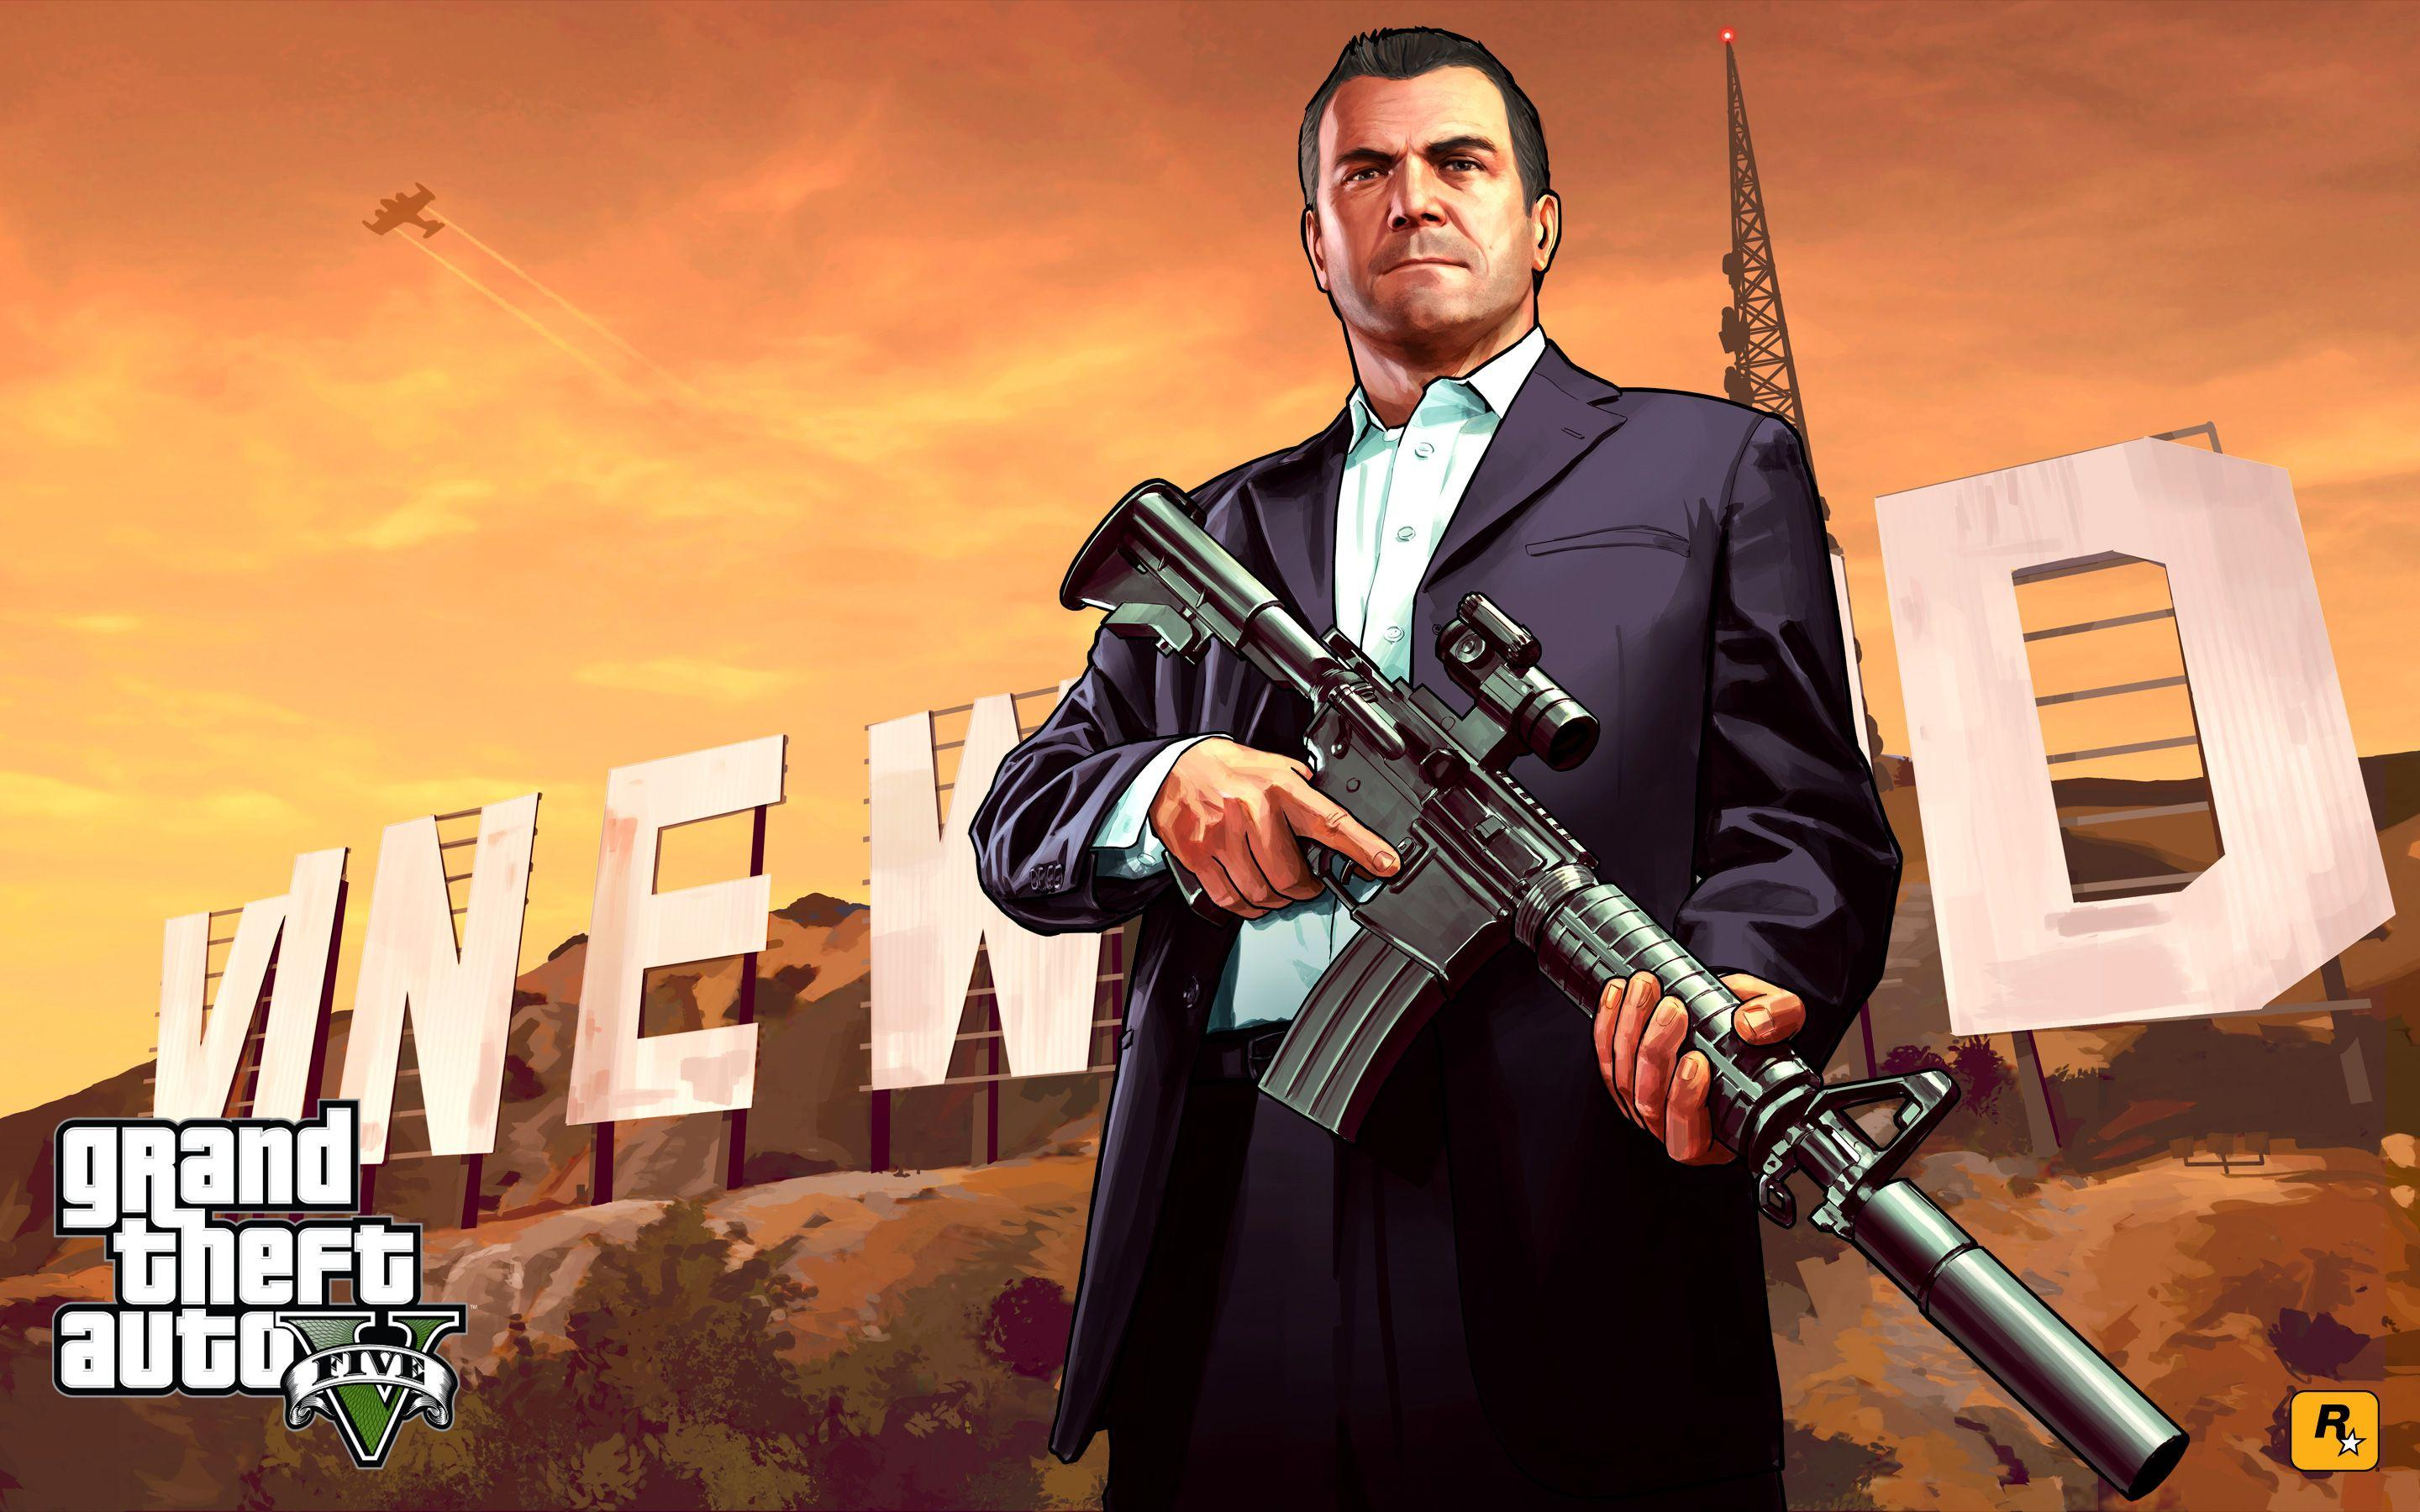 Grand Theft Auto V Wallpapers Wallpaper